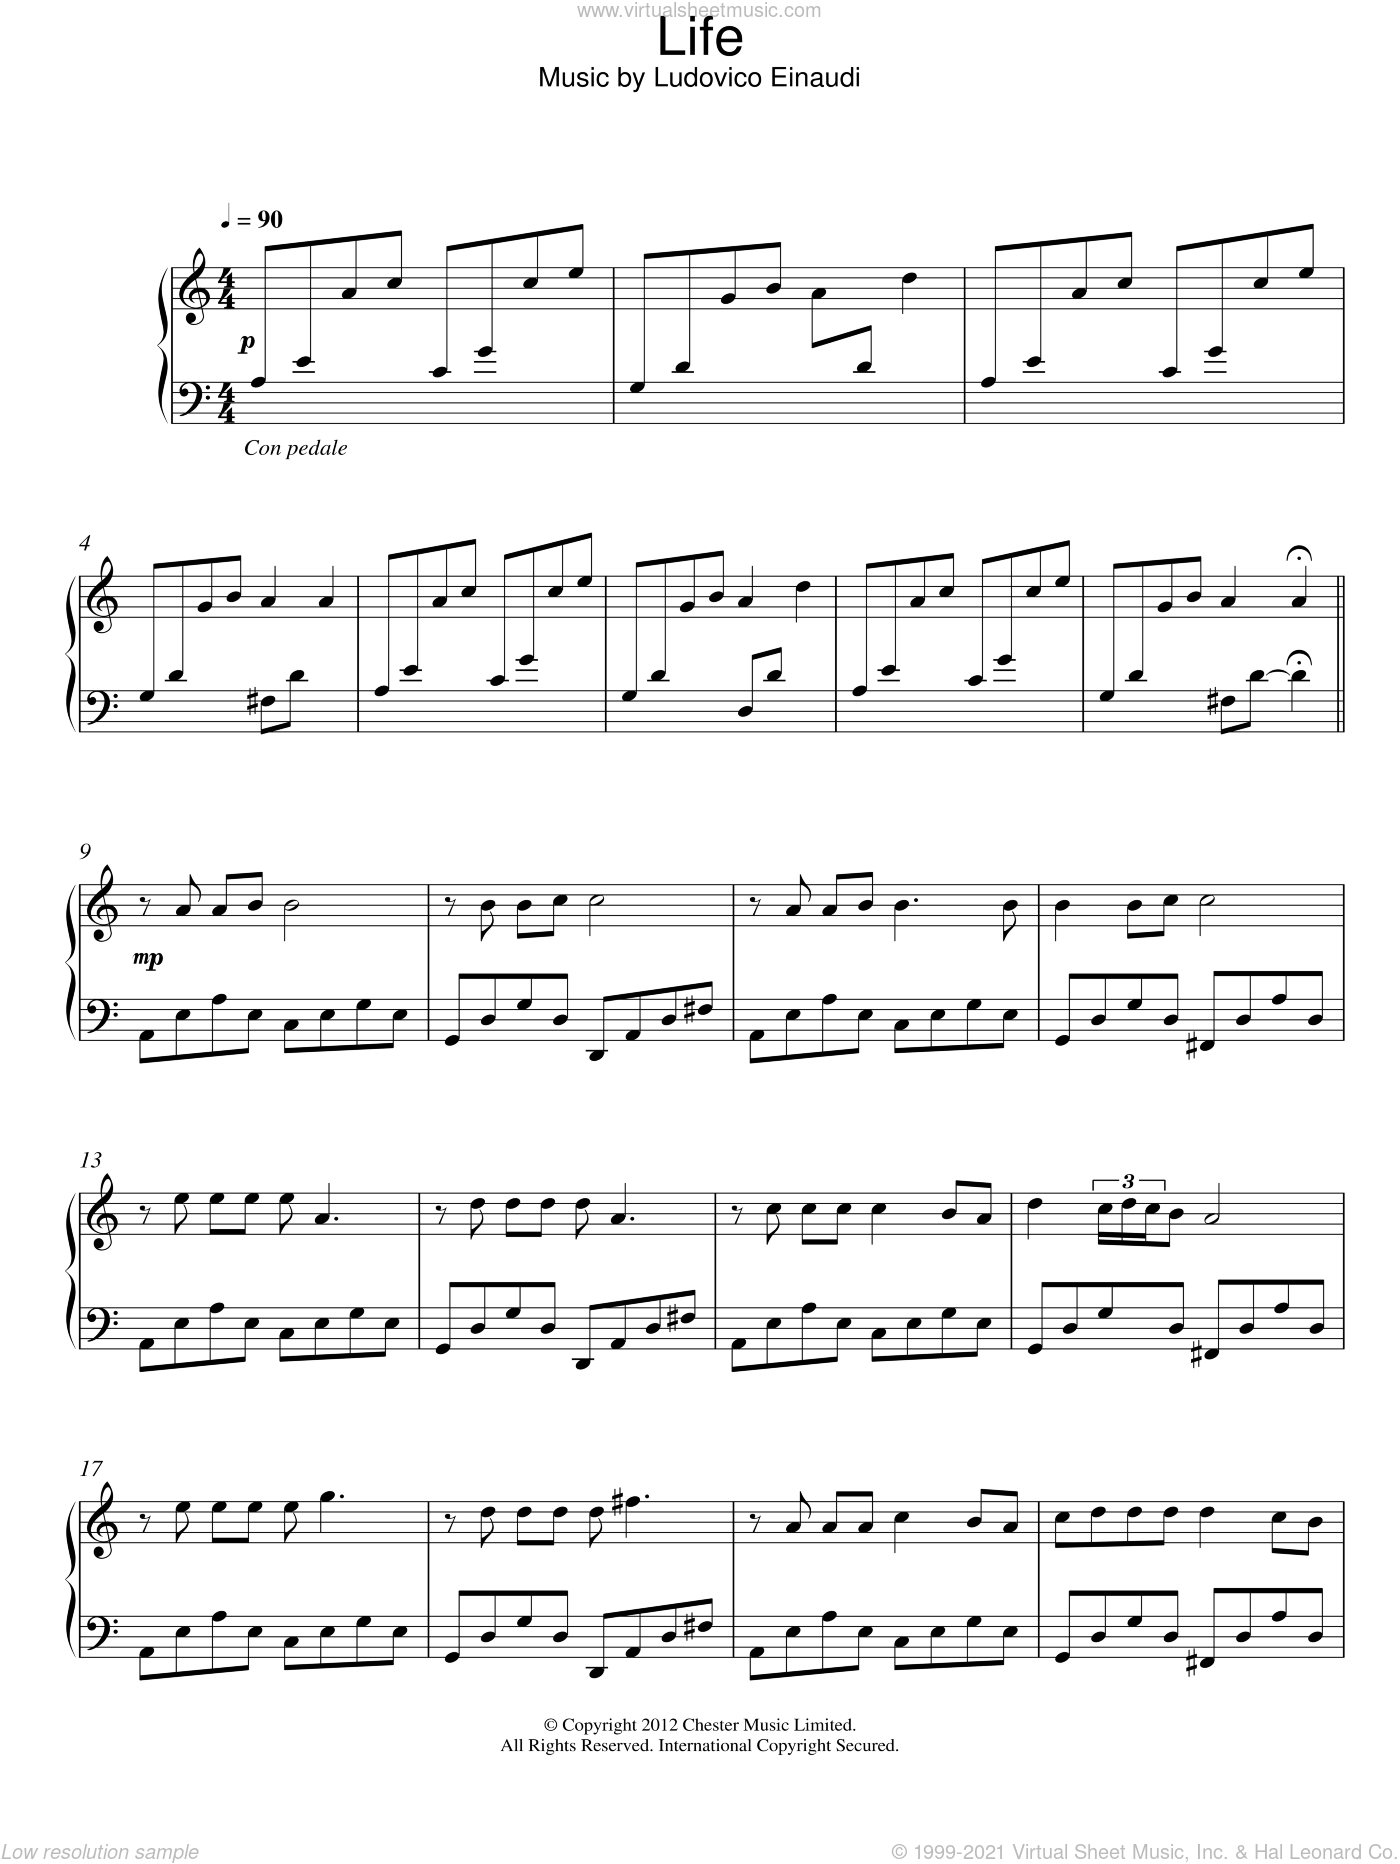 Life sheet music for piano solo by Ludovico Einaudi